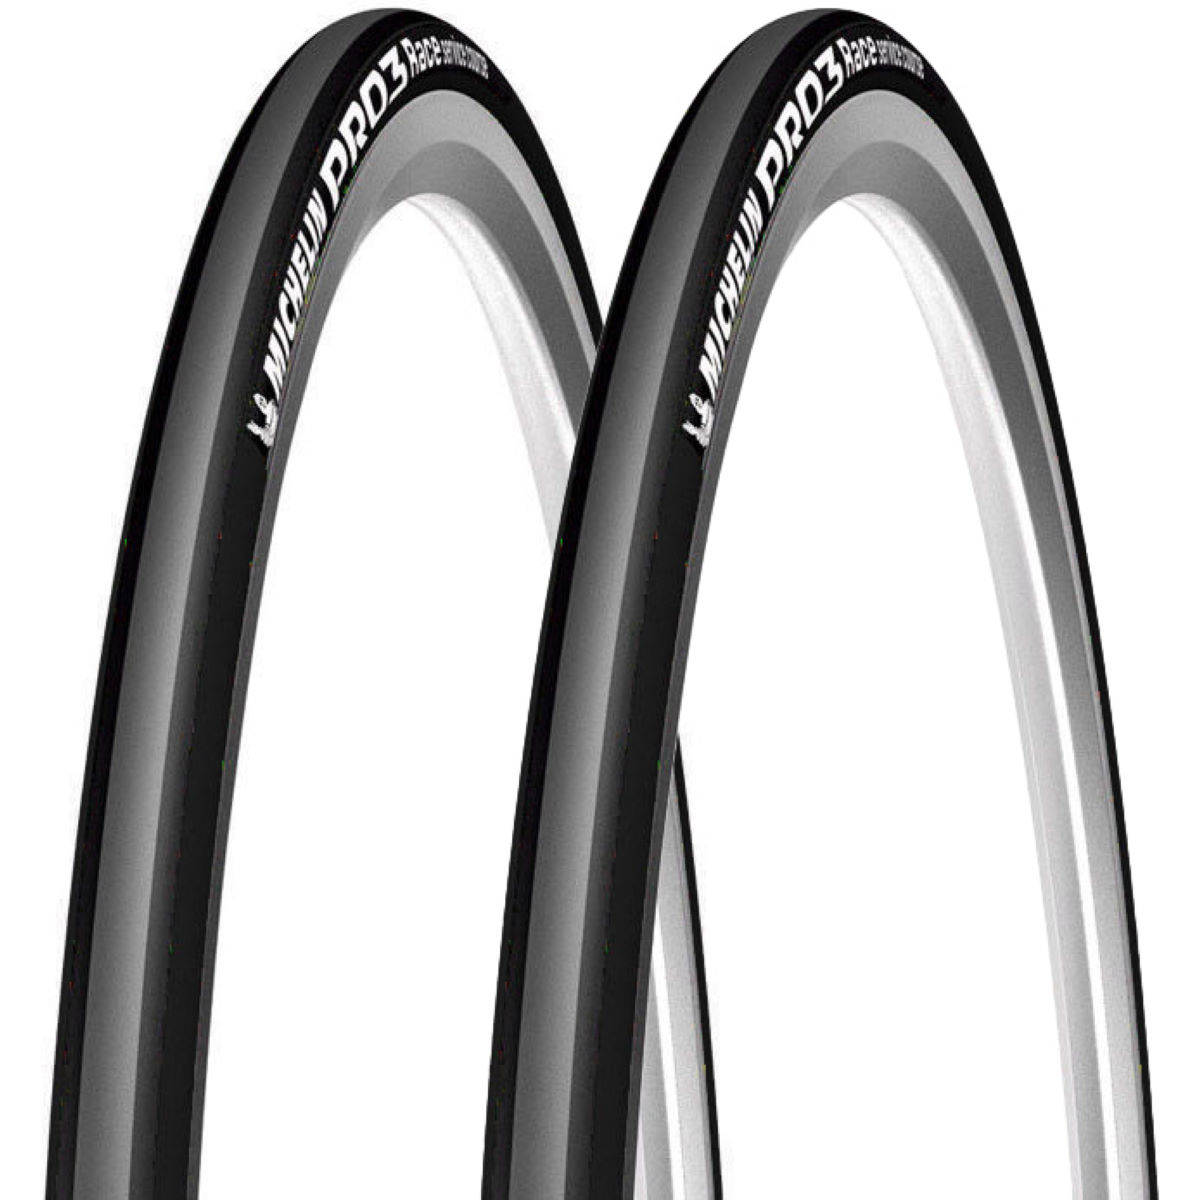 Michelin Pro 3 Road 25c Tyres - Pair   Tyres